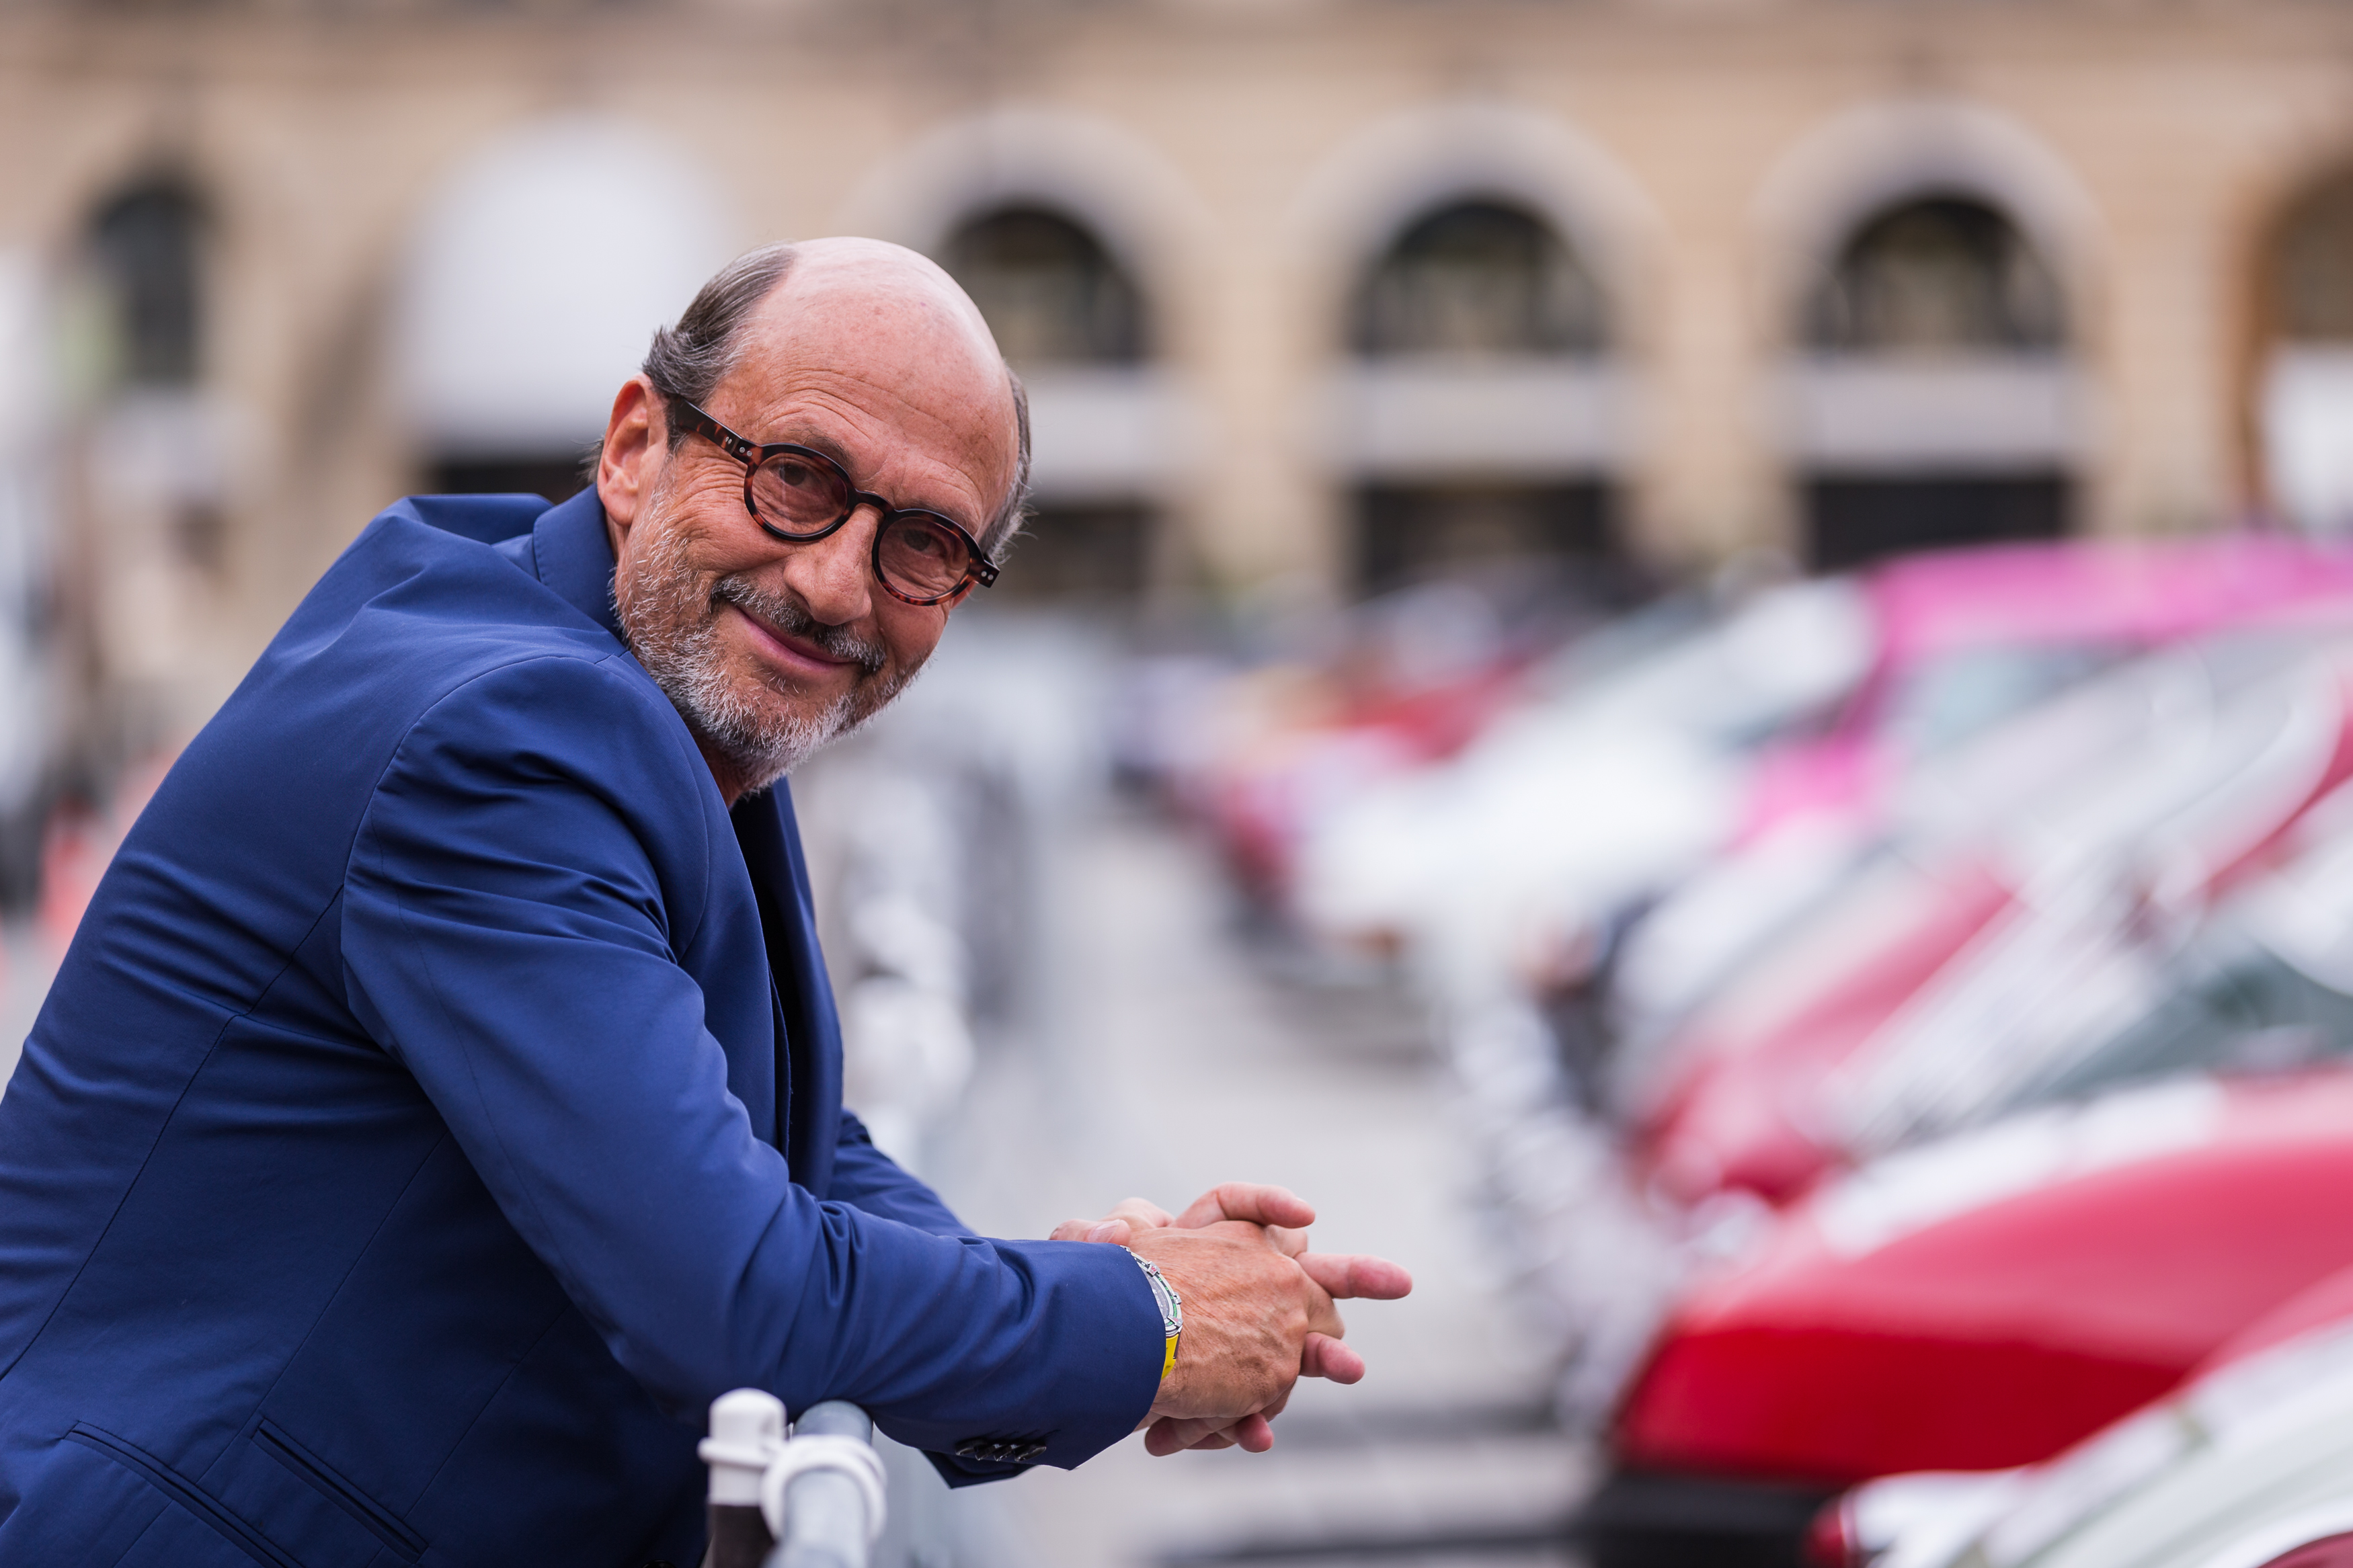 Richard Mille, CEO of Richard Mille by Richard Bord